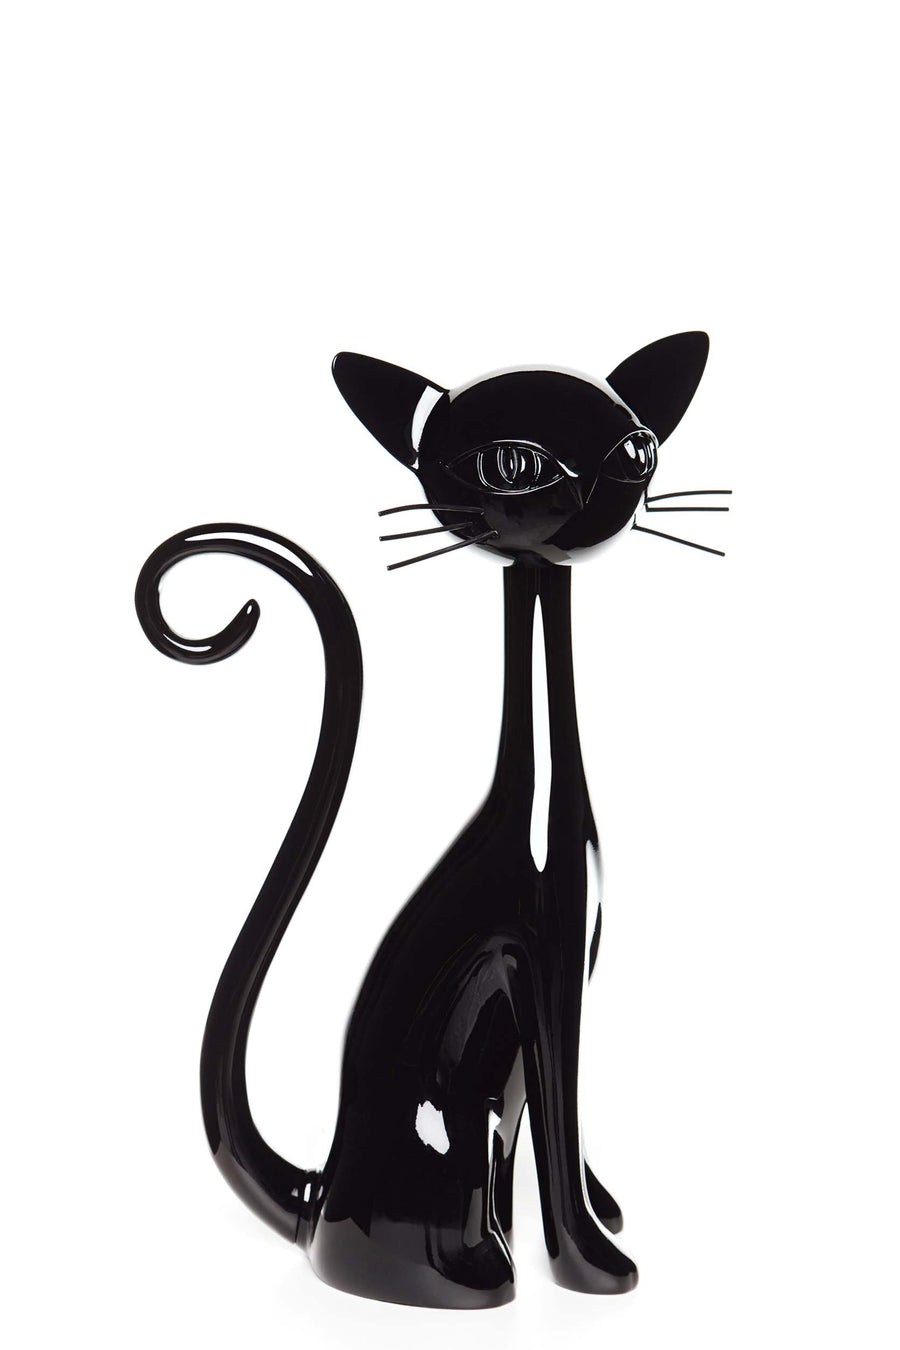 jet black sitting cat mannequin with long neck, curled tail, whiskers, and fluorescent yellow eyes